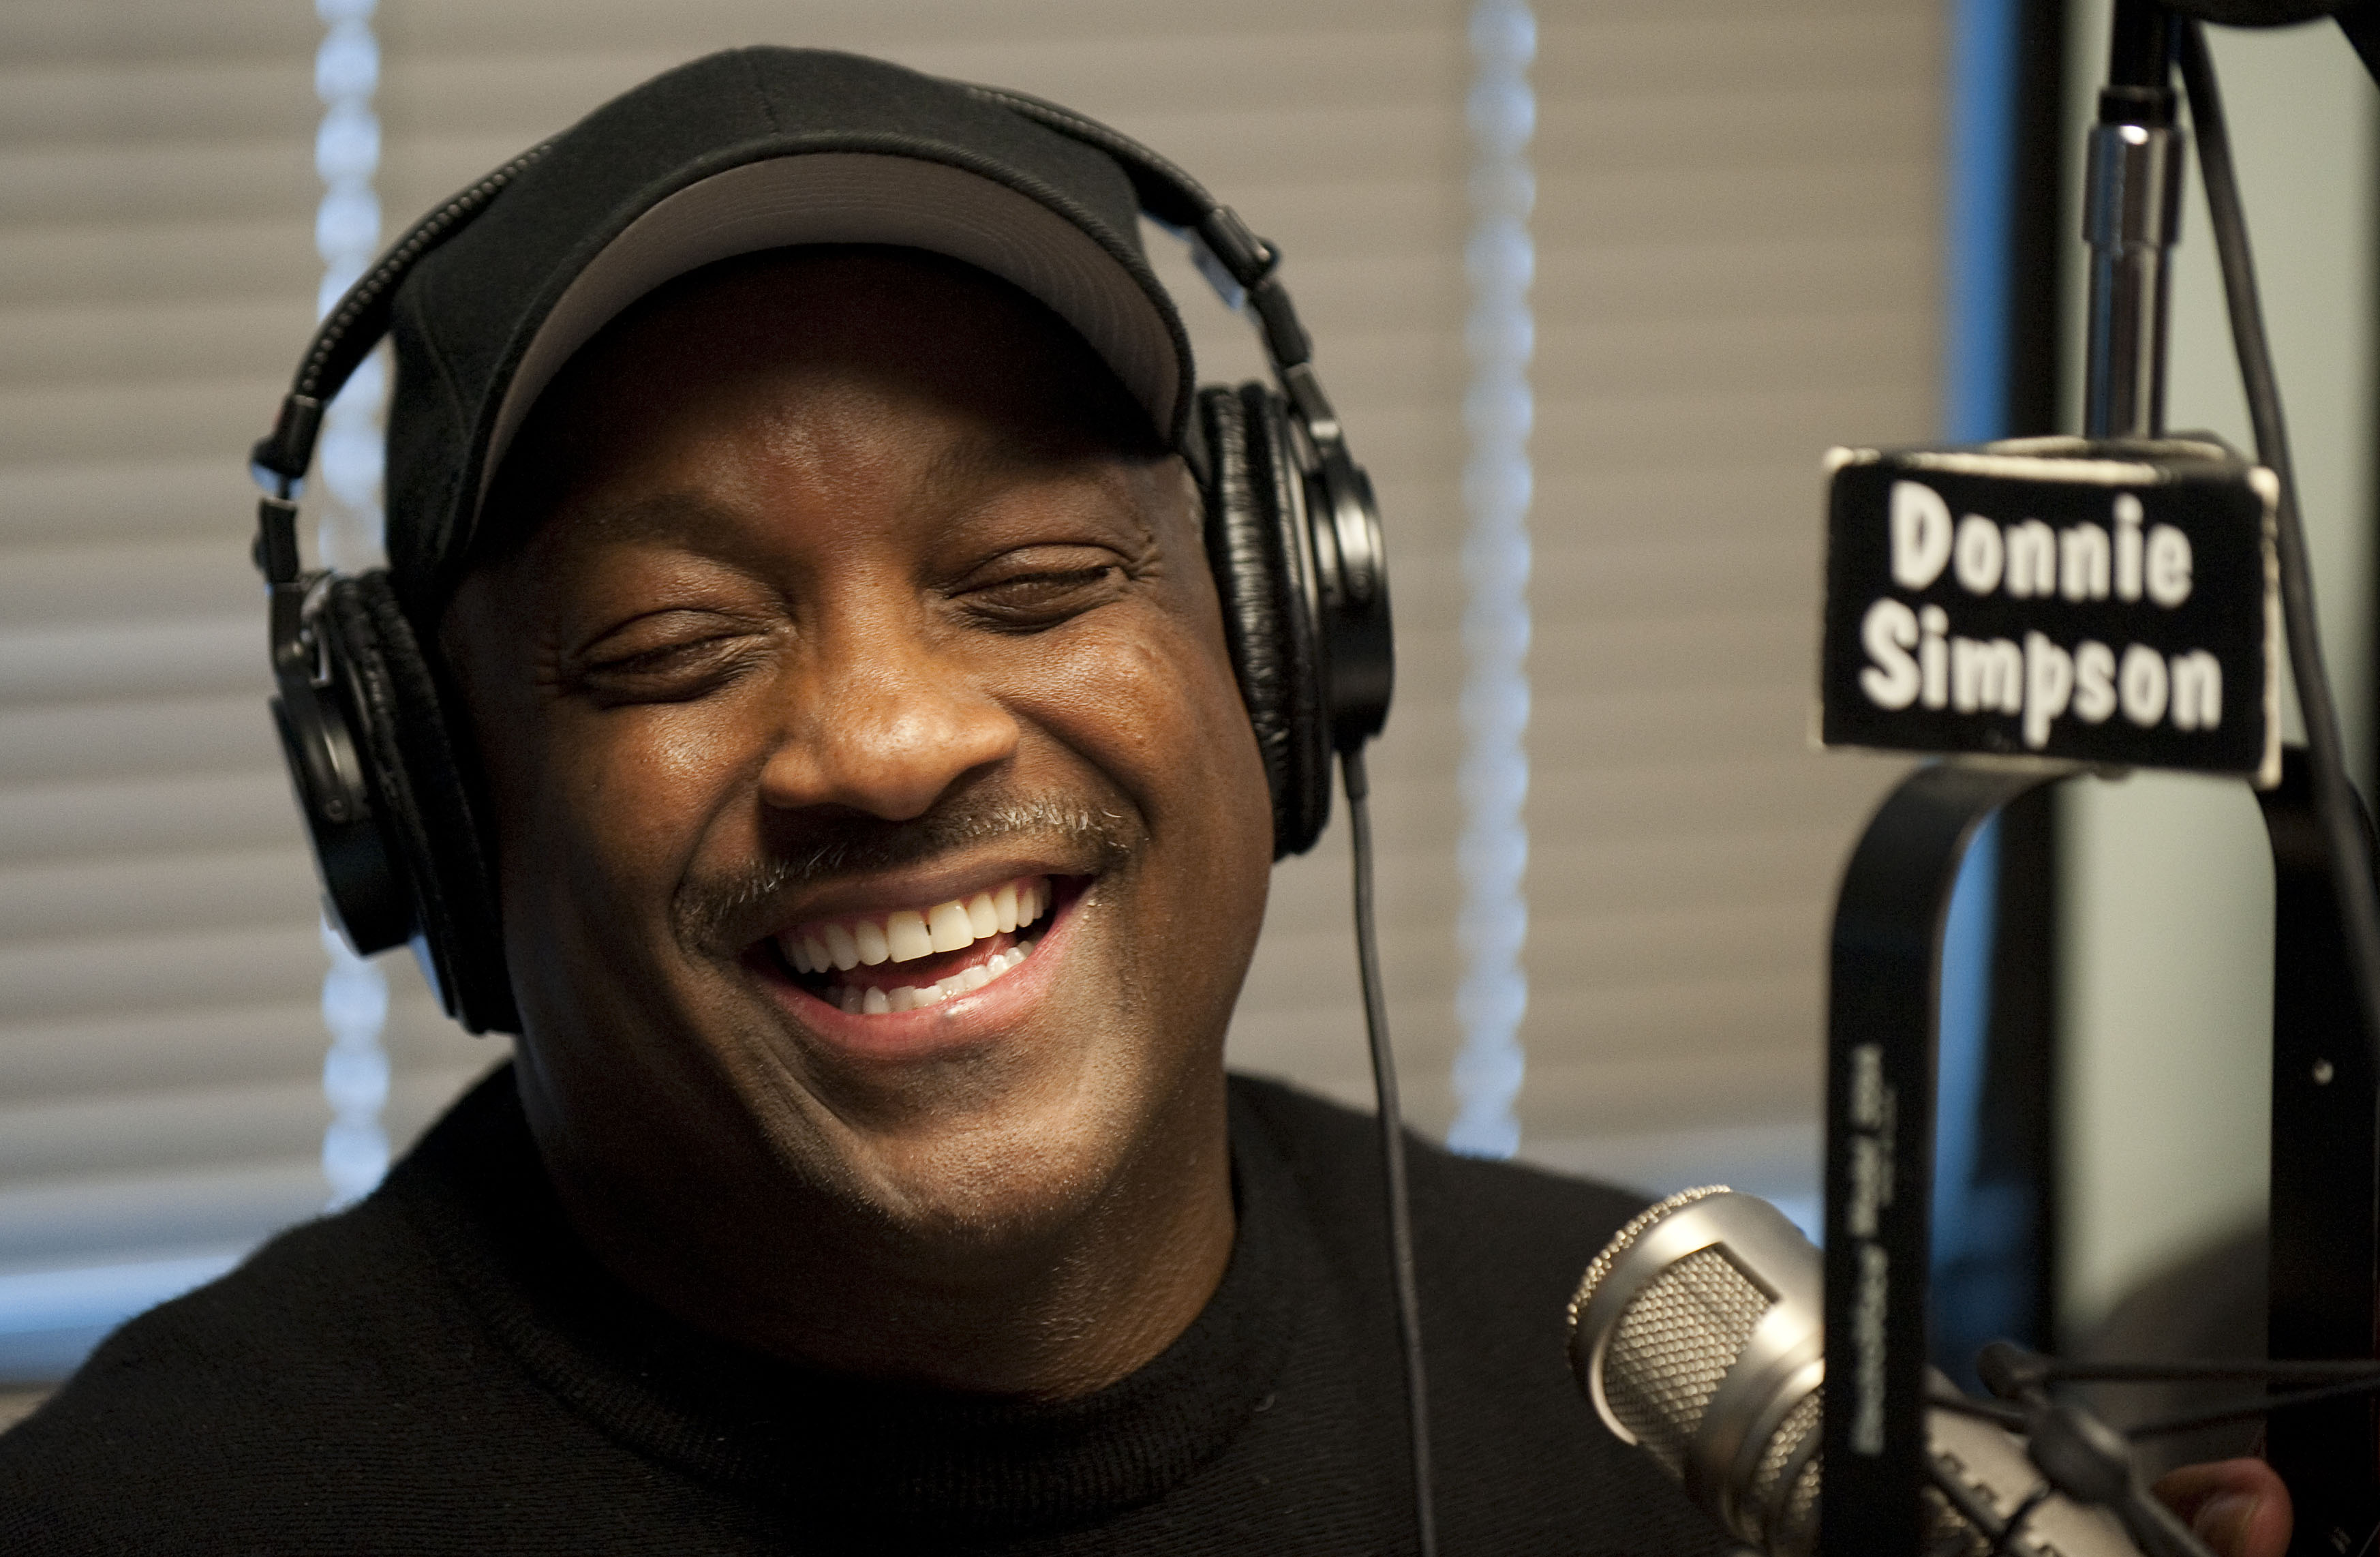 LANHAM, MD - January 29: Donnie Simpson's last day of his popula